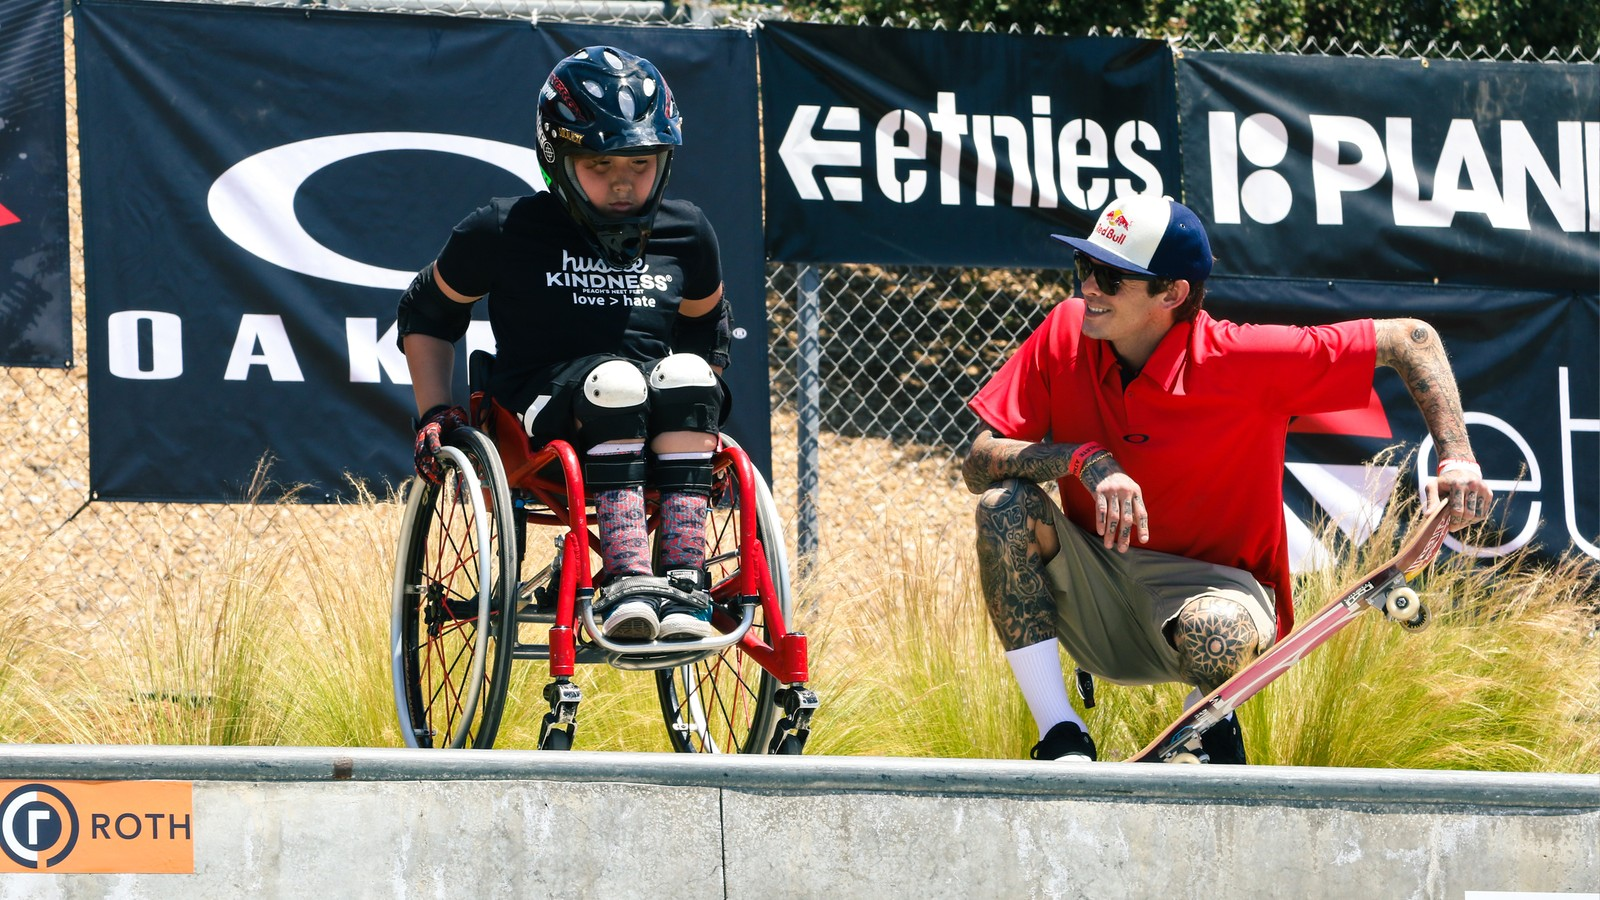 SHECKLER FOUNDATION'S 10TH ANNUAL 'SKATE FOR A CAUSE' EVENT IS GOING NATIONWIDE